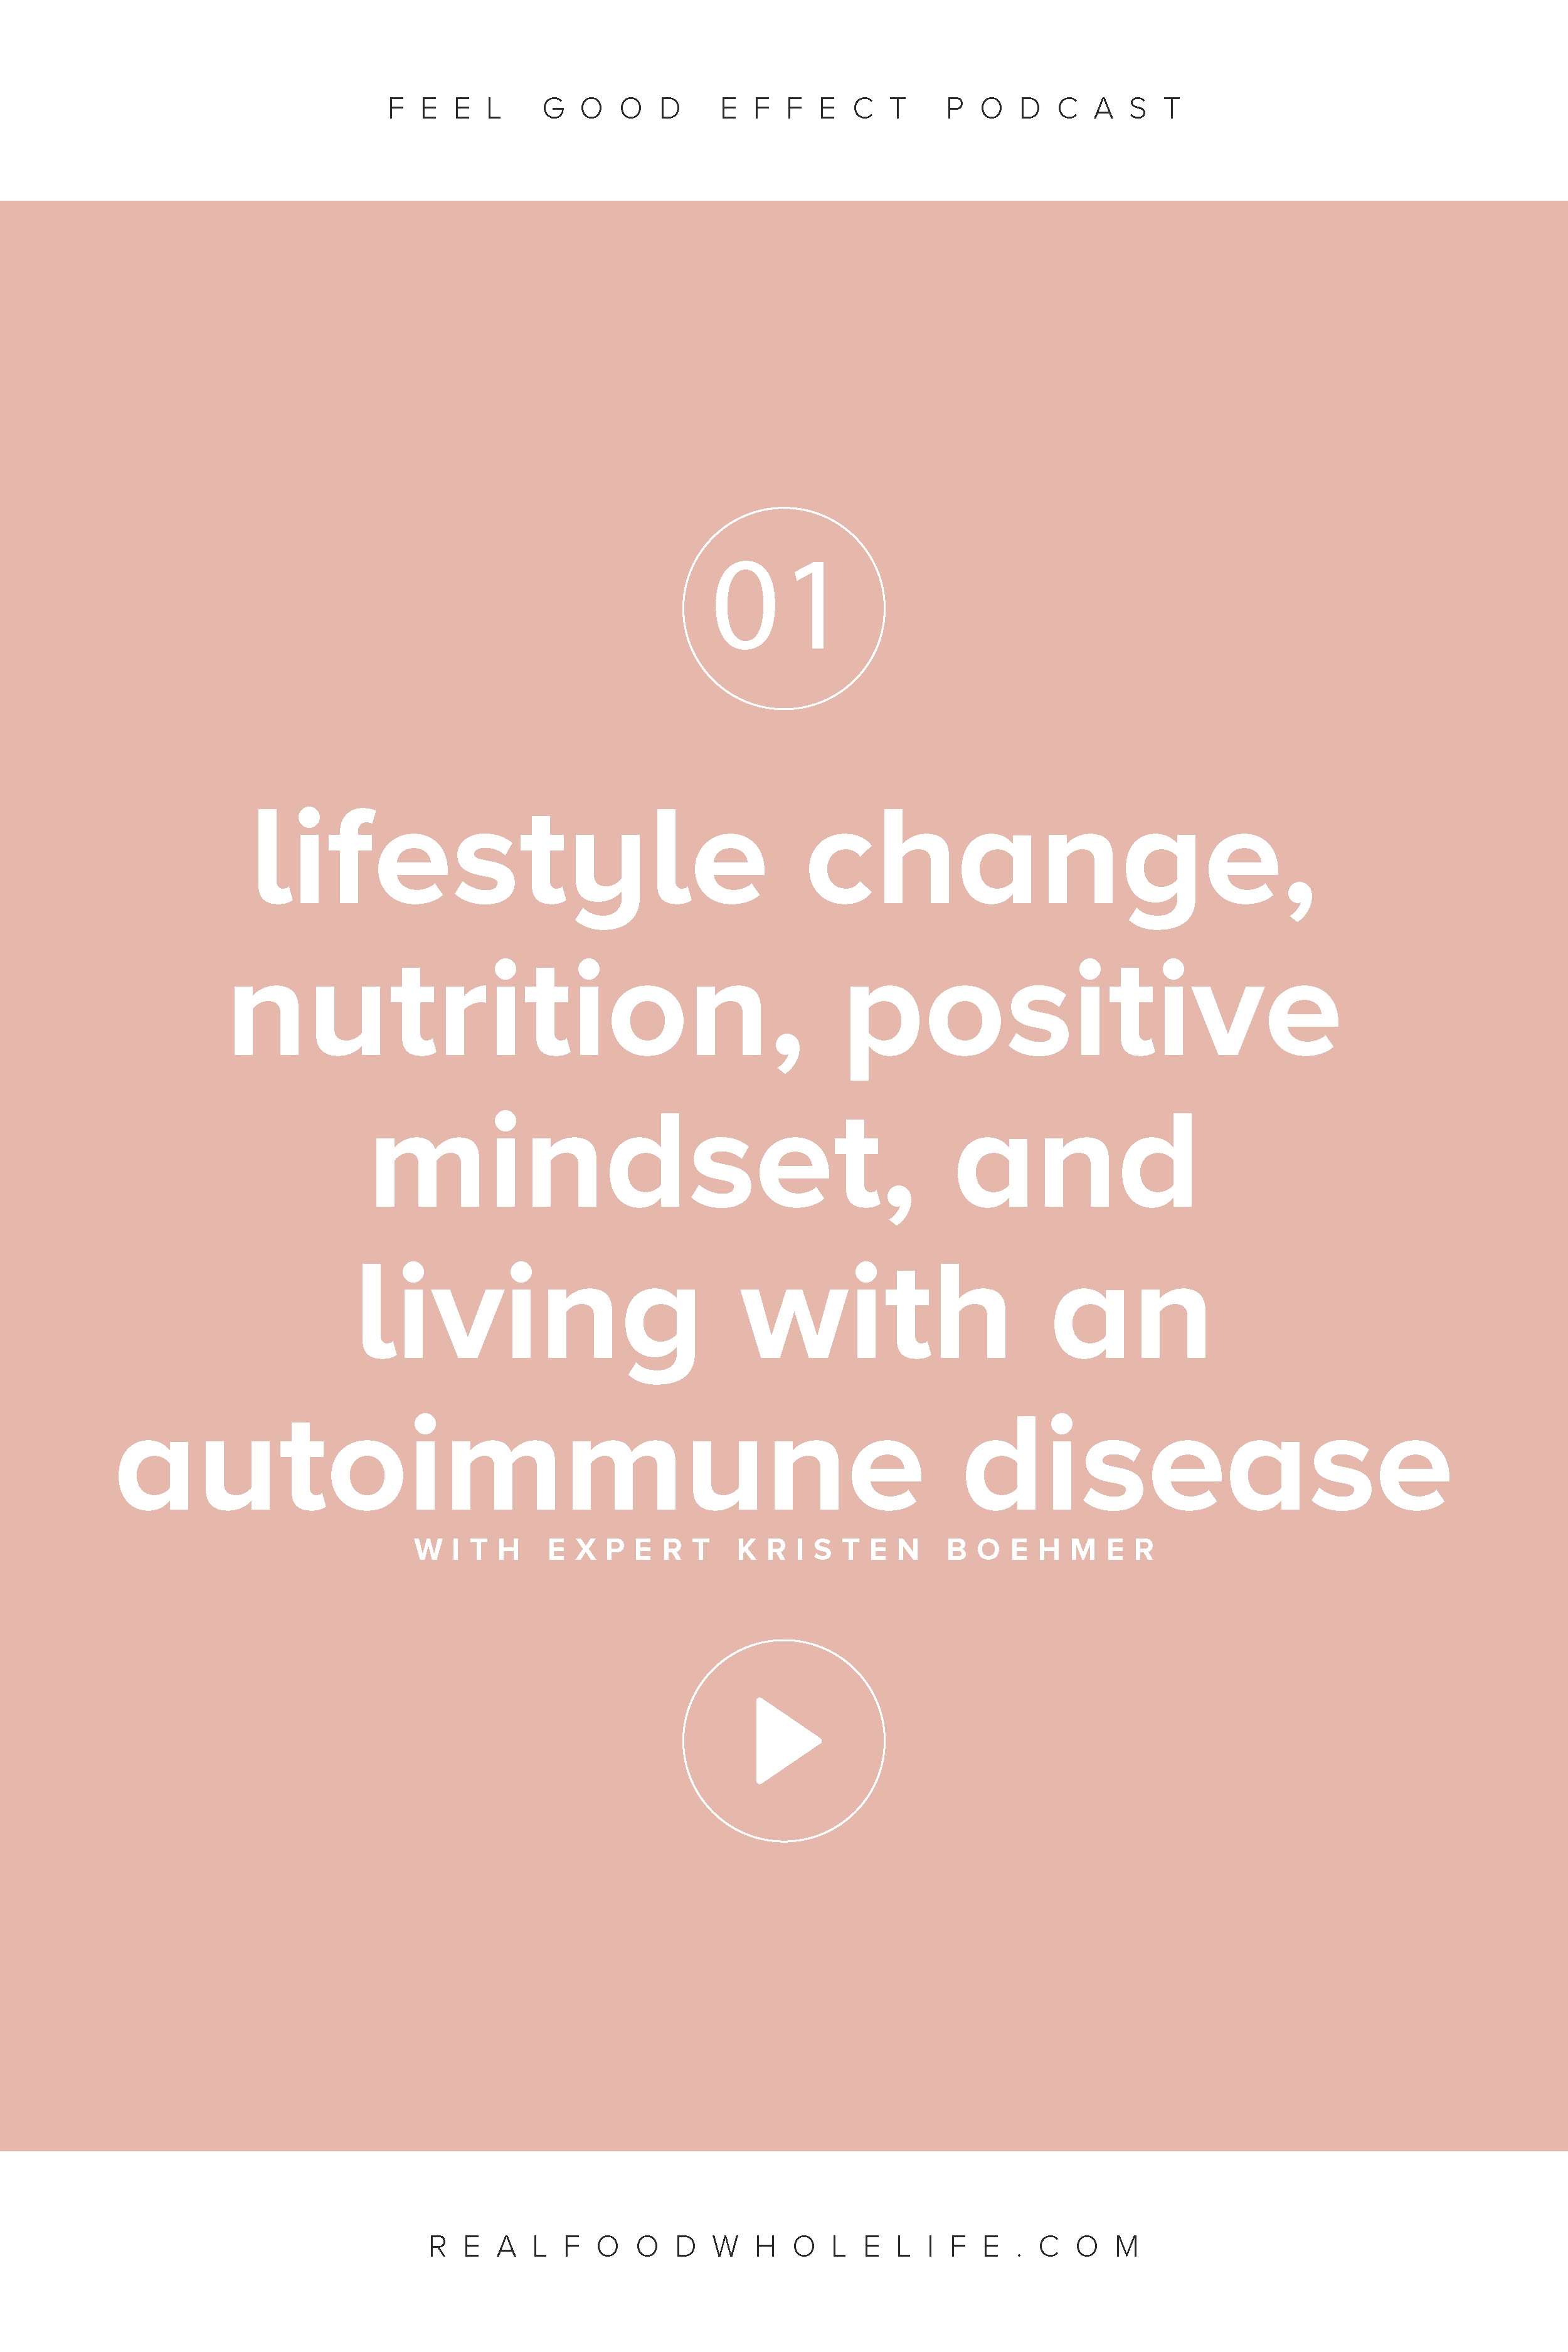 Lifestyle Change, Nutrition, Positive Mindset, and Living with an Autoimmune Disease with Kristen Boehmer